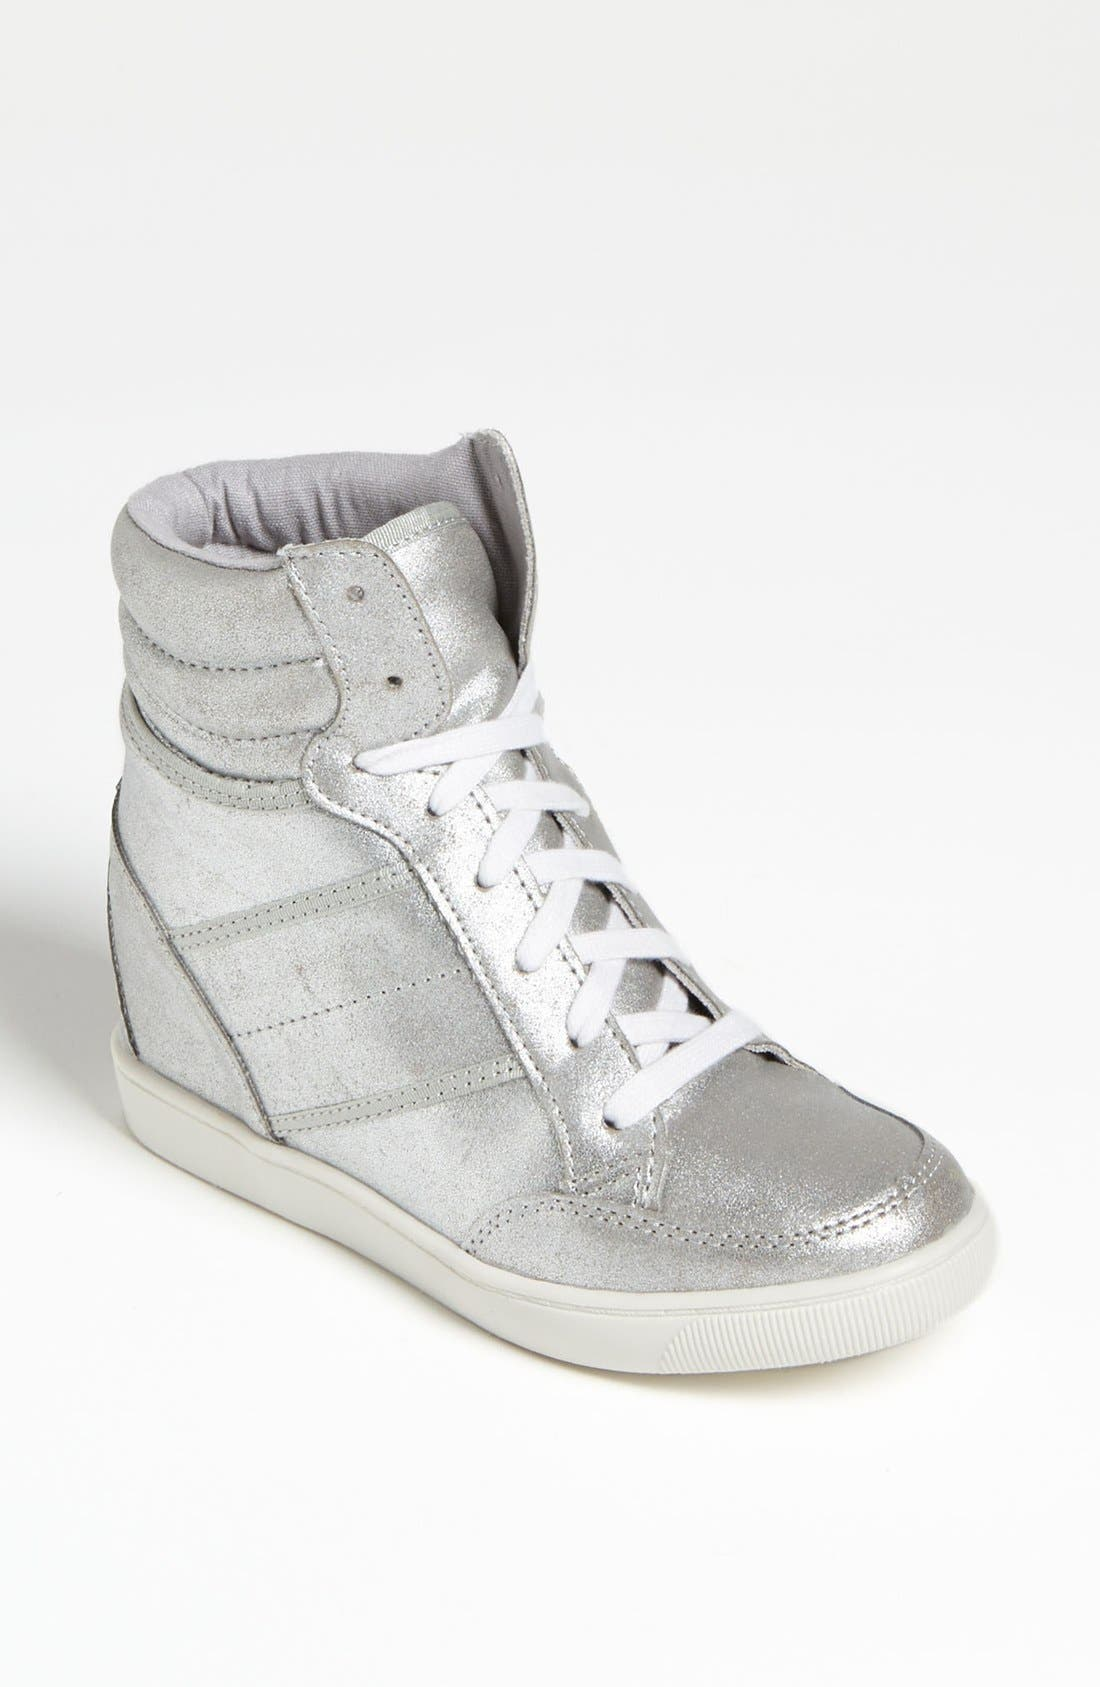 Alternate Image 1 Selected - GOLDLUXE by Zigi 'Rumba' Wedge Sneaker